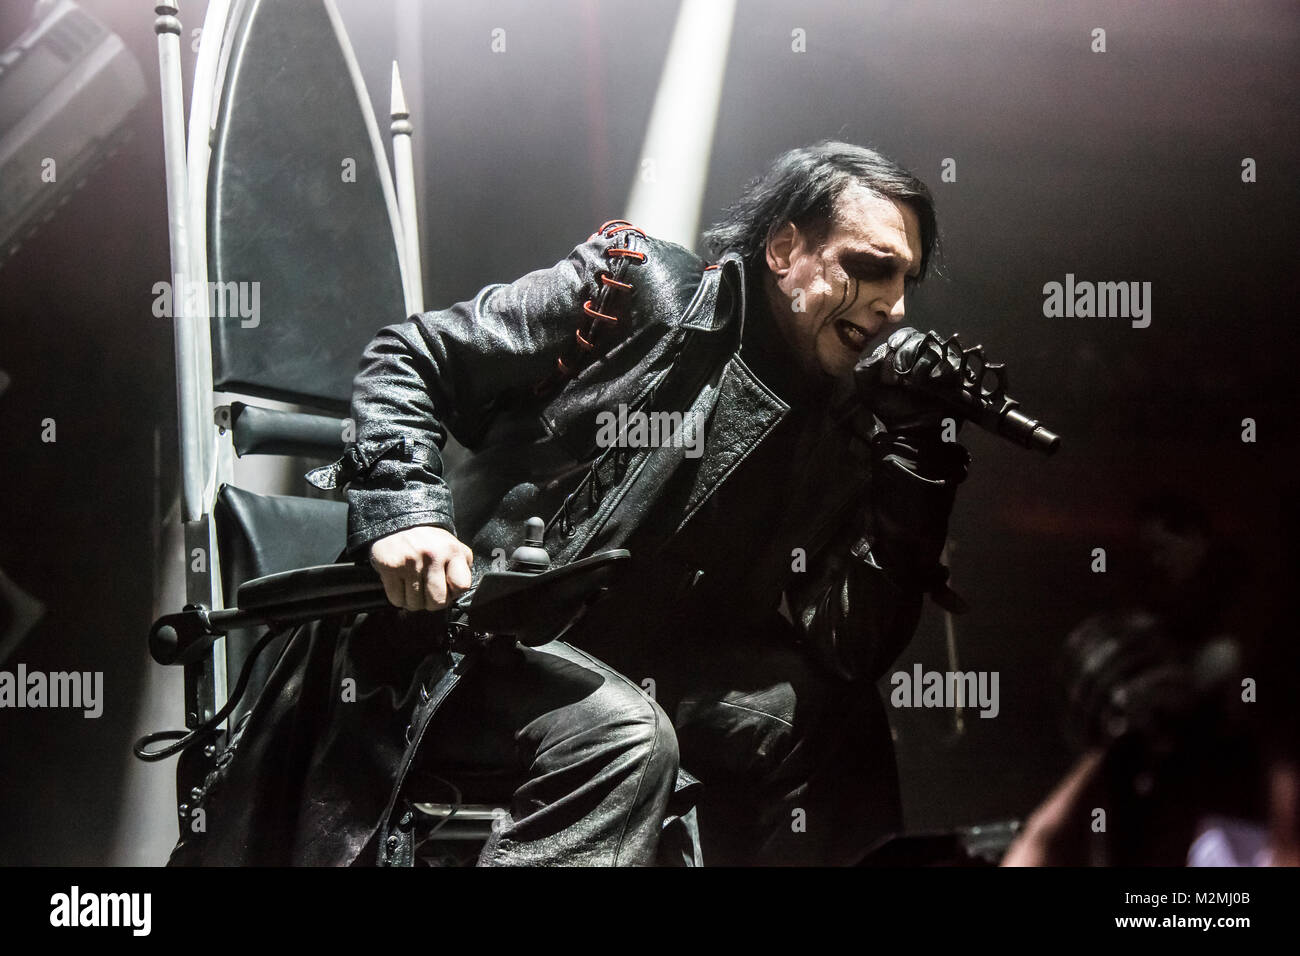 Marilyn manson concert stock photos marilyn manson concert stock marilyn manson performs at hollywood palladium in los angeles on the heaven upside down tour 2018 kristyandbryce Choice Image